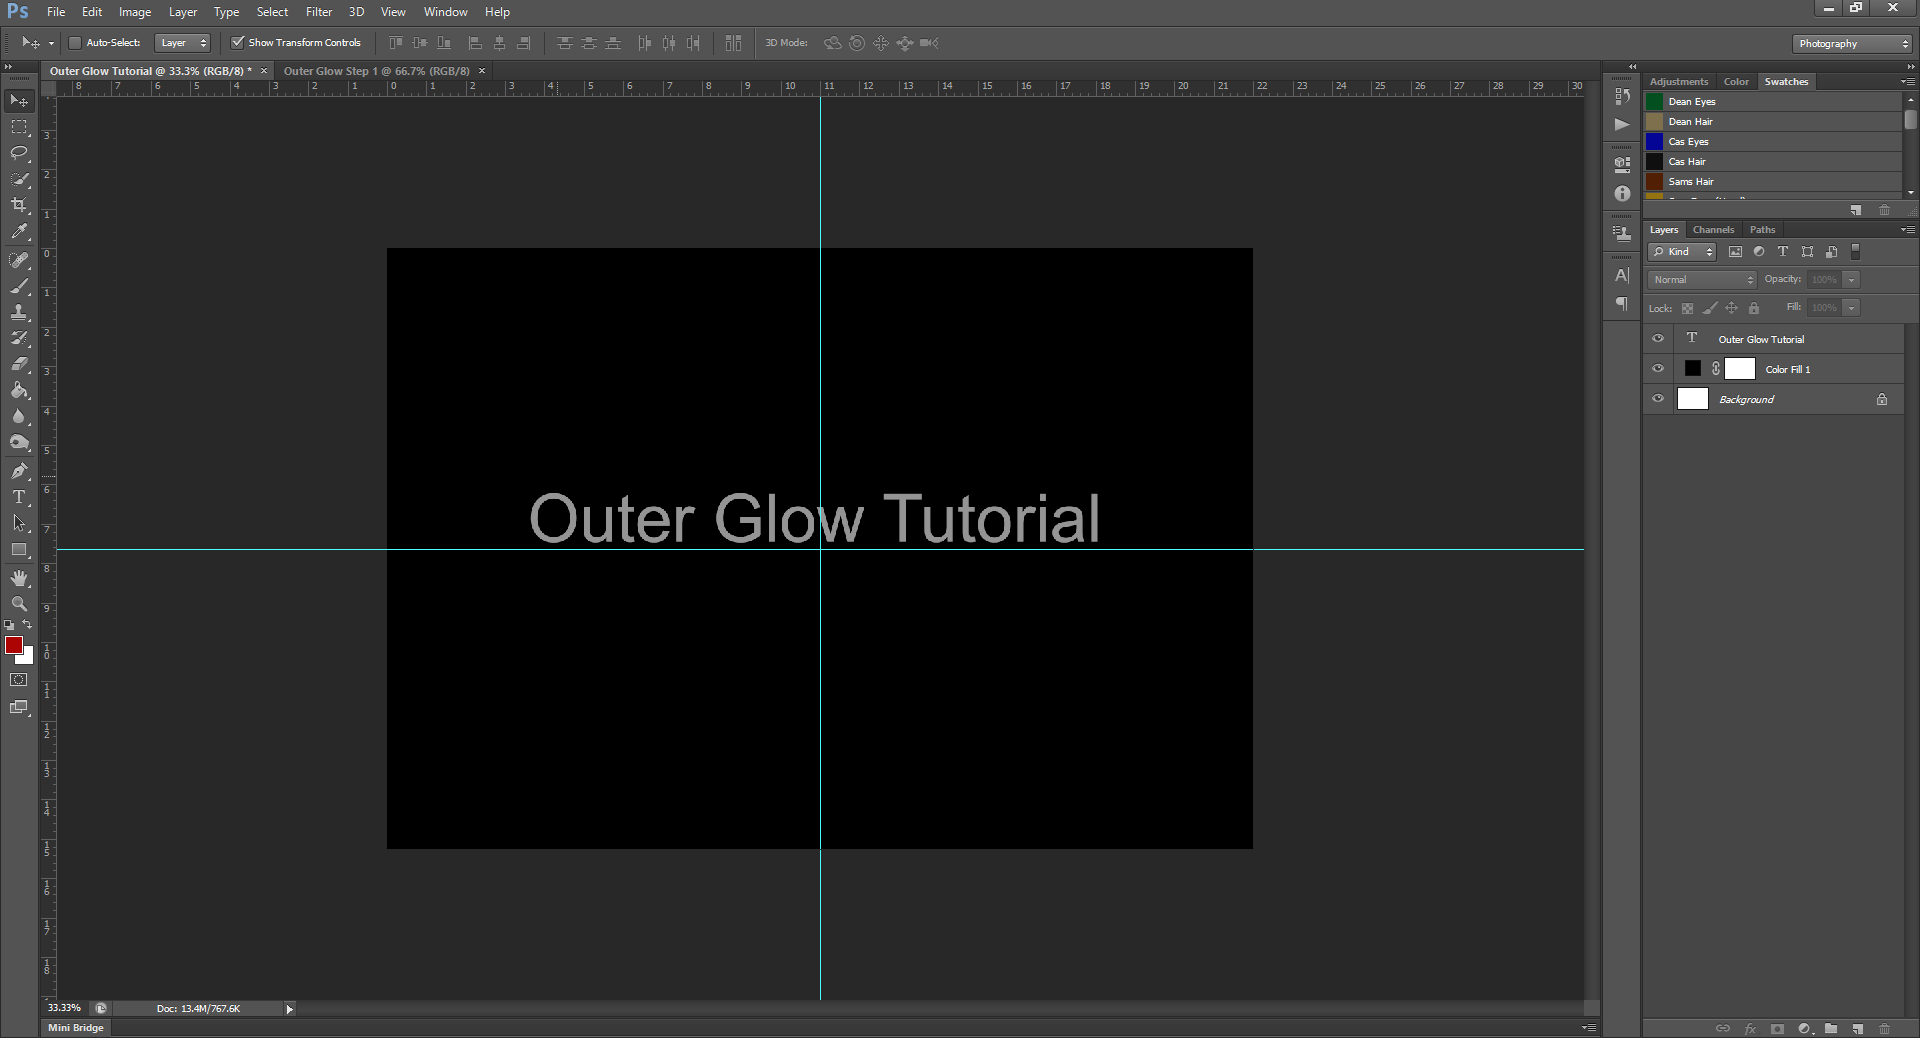 AterImber.com - Writing - Writer Tips - Photoshop Tutorials - Outer Glow - Step 1 - PHSH Tutorials, Outer Glow, photoshop, tutorials, indie authors, book covers